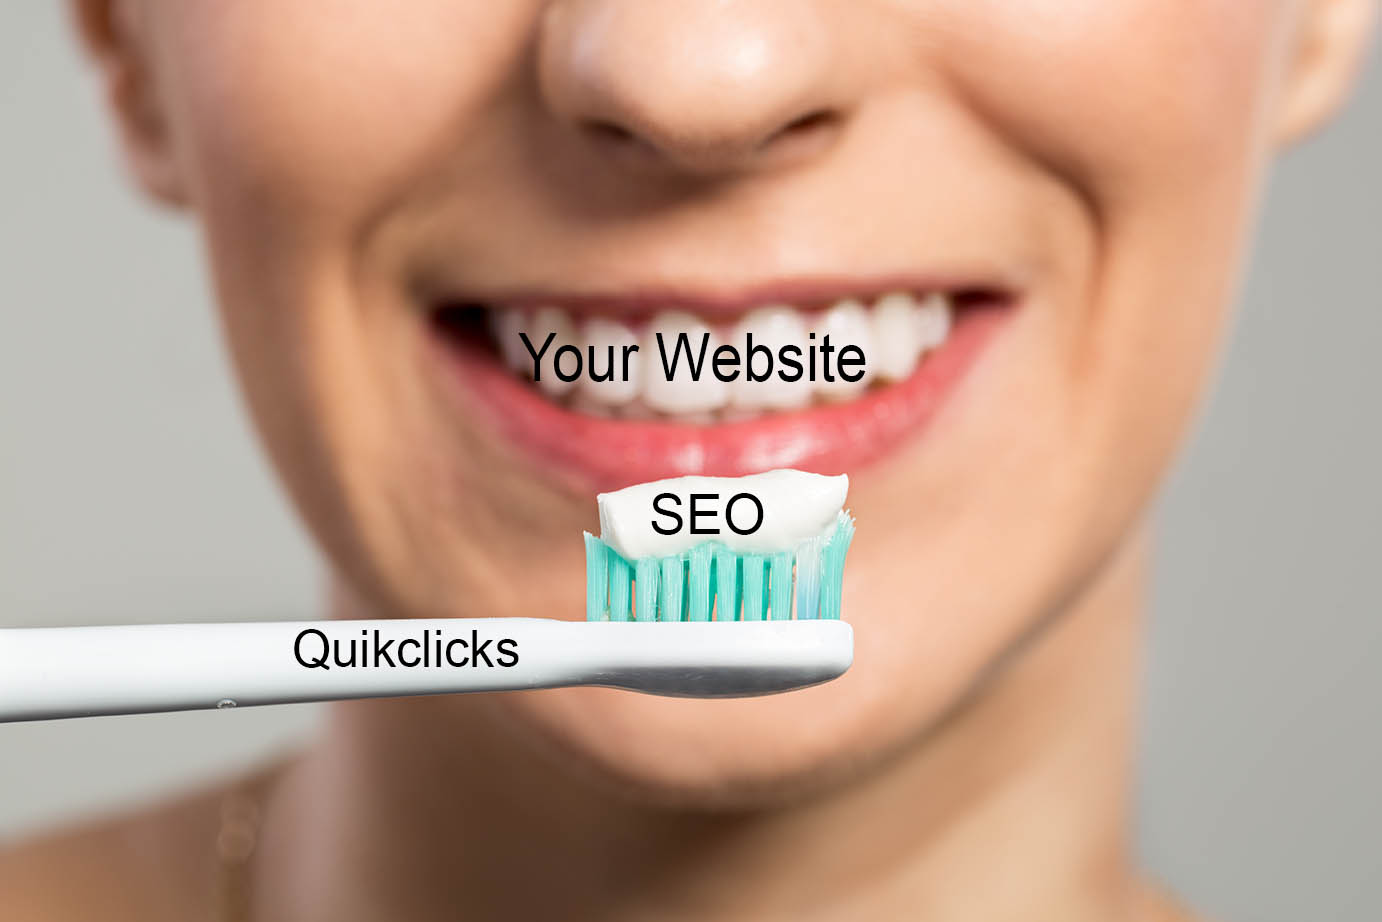 Dentists SEO